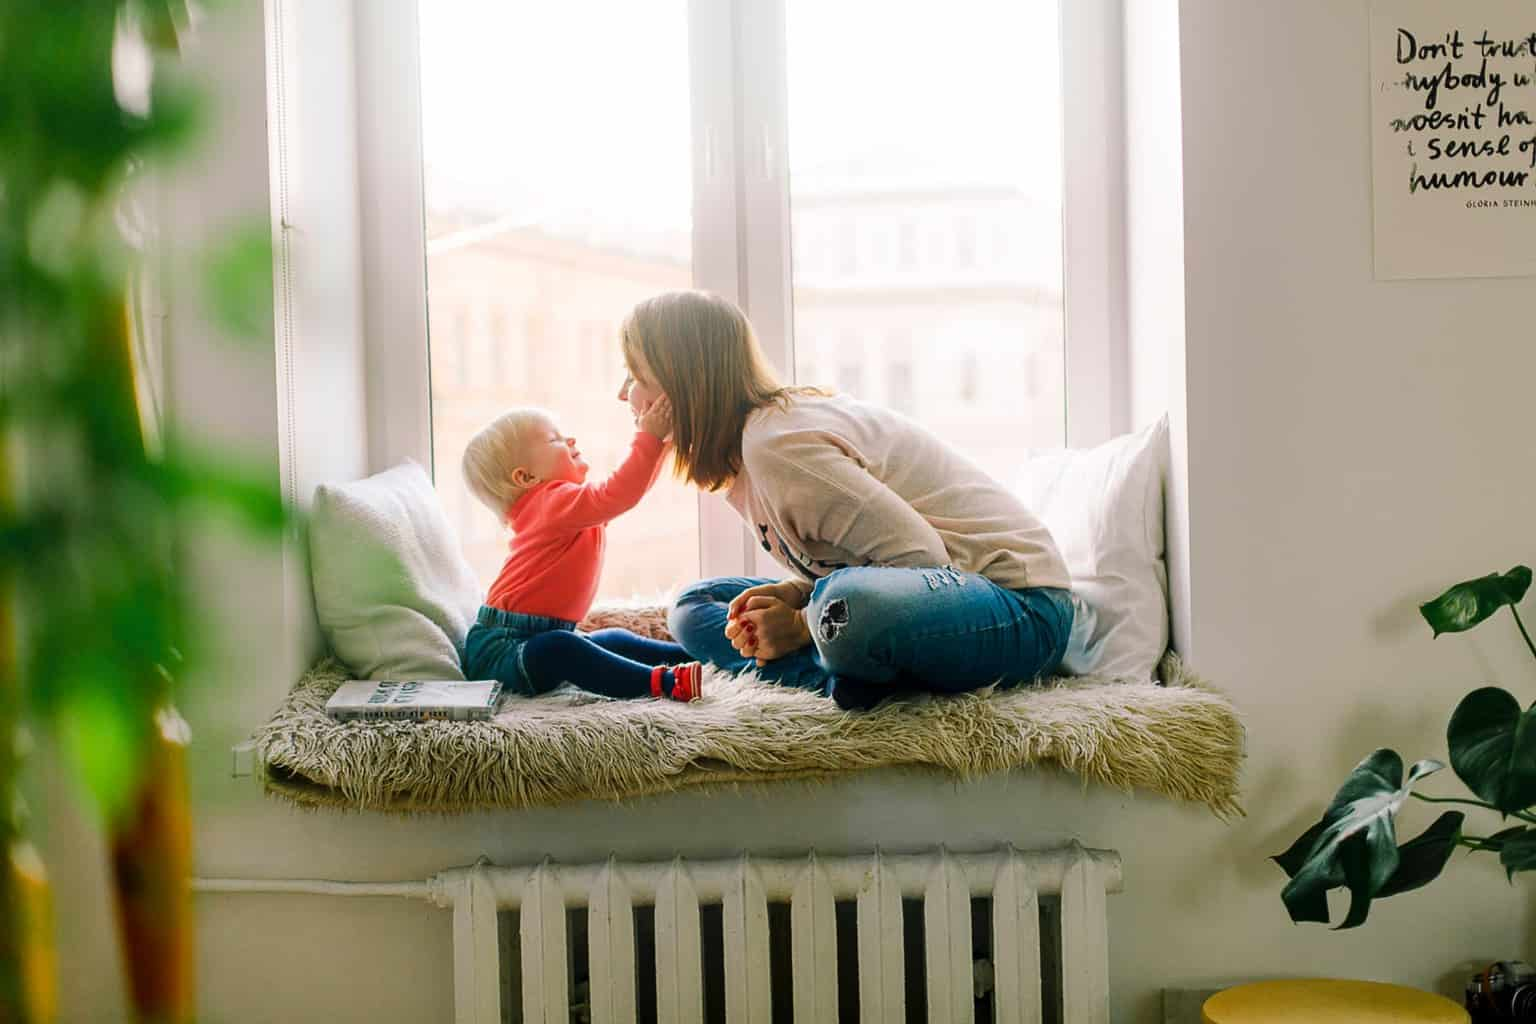 5 Secrets To Parenting A Smart Baby